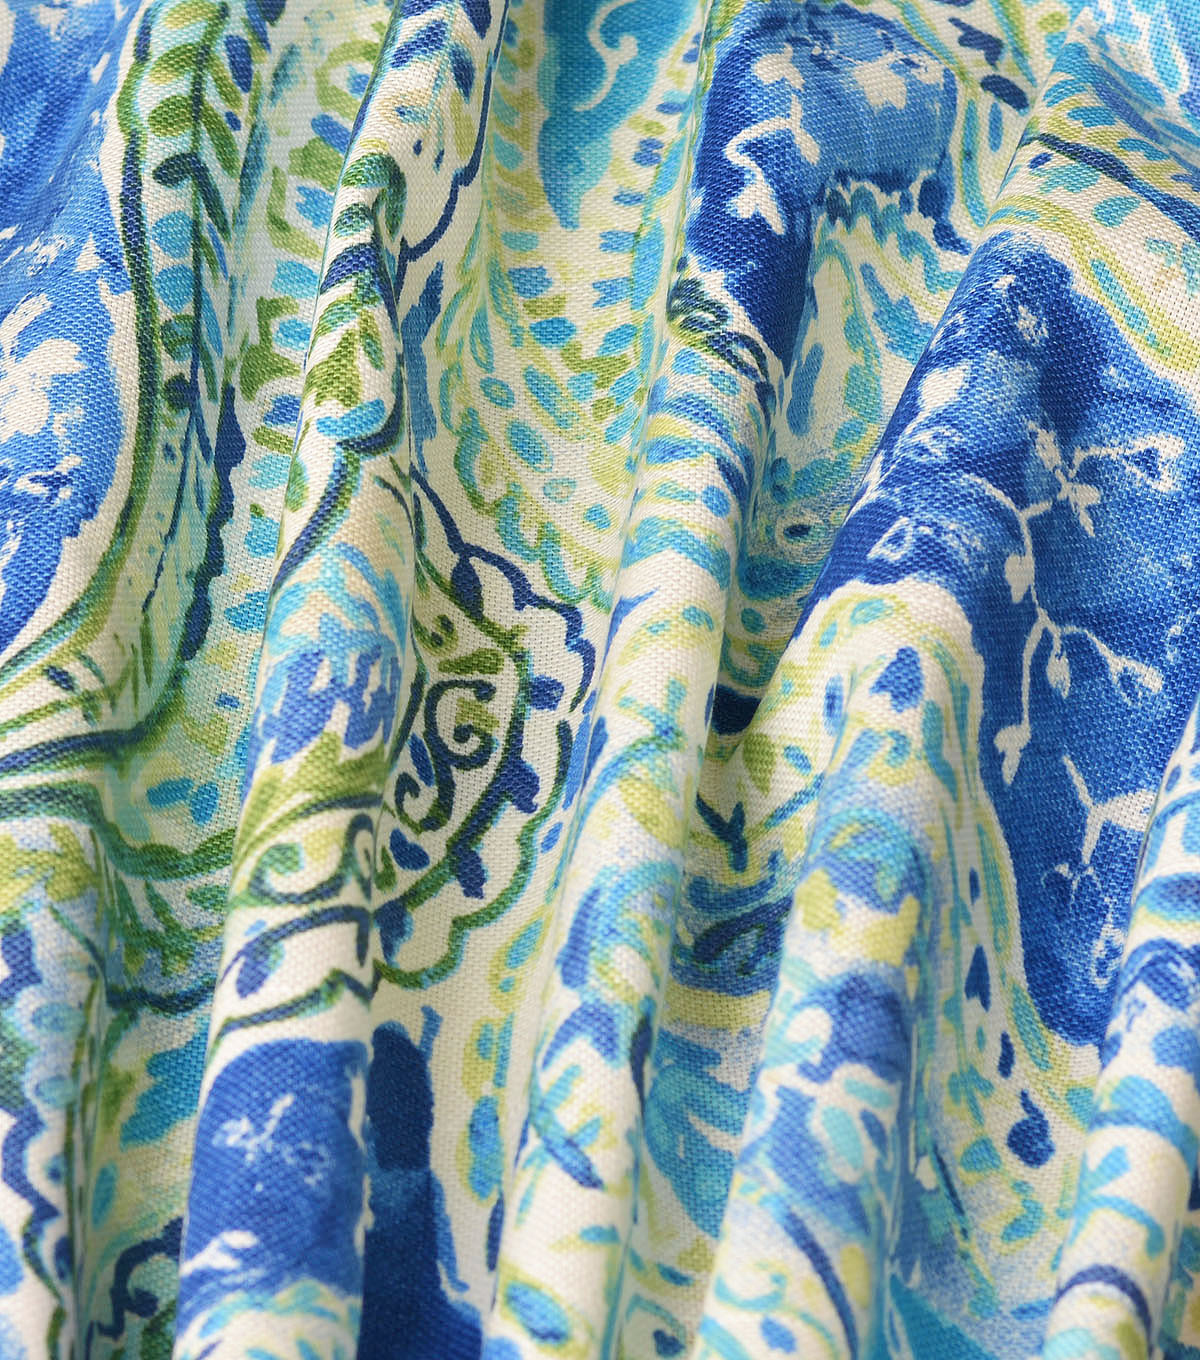 Kelly Ripa Home Upholstery Décor Fabric-Bright & Lively Bluebell